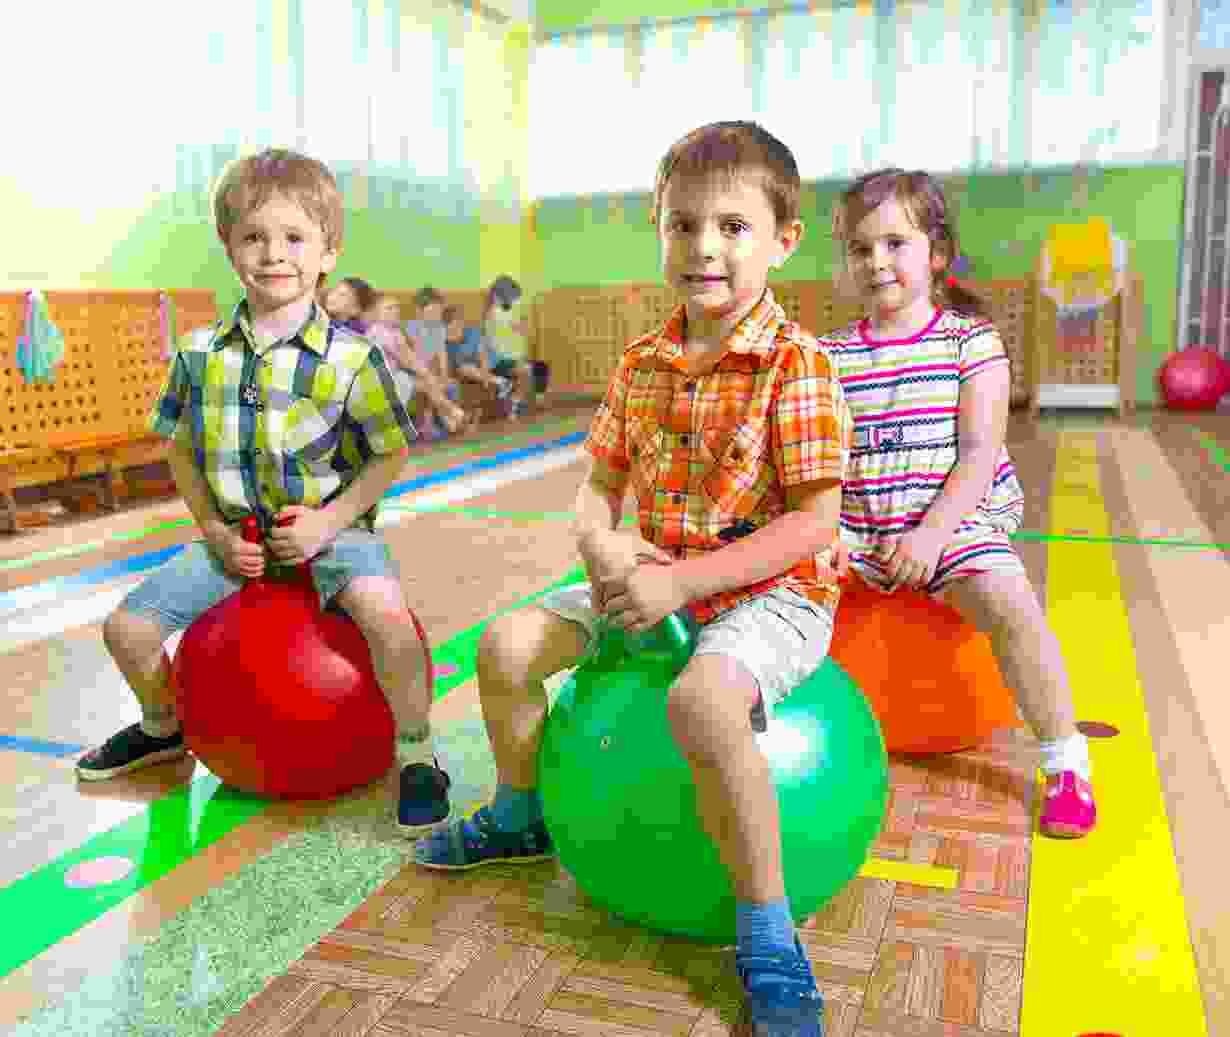 Children Aerobic Training